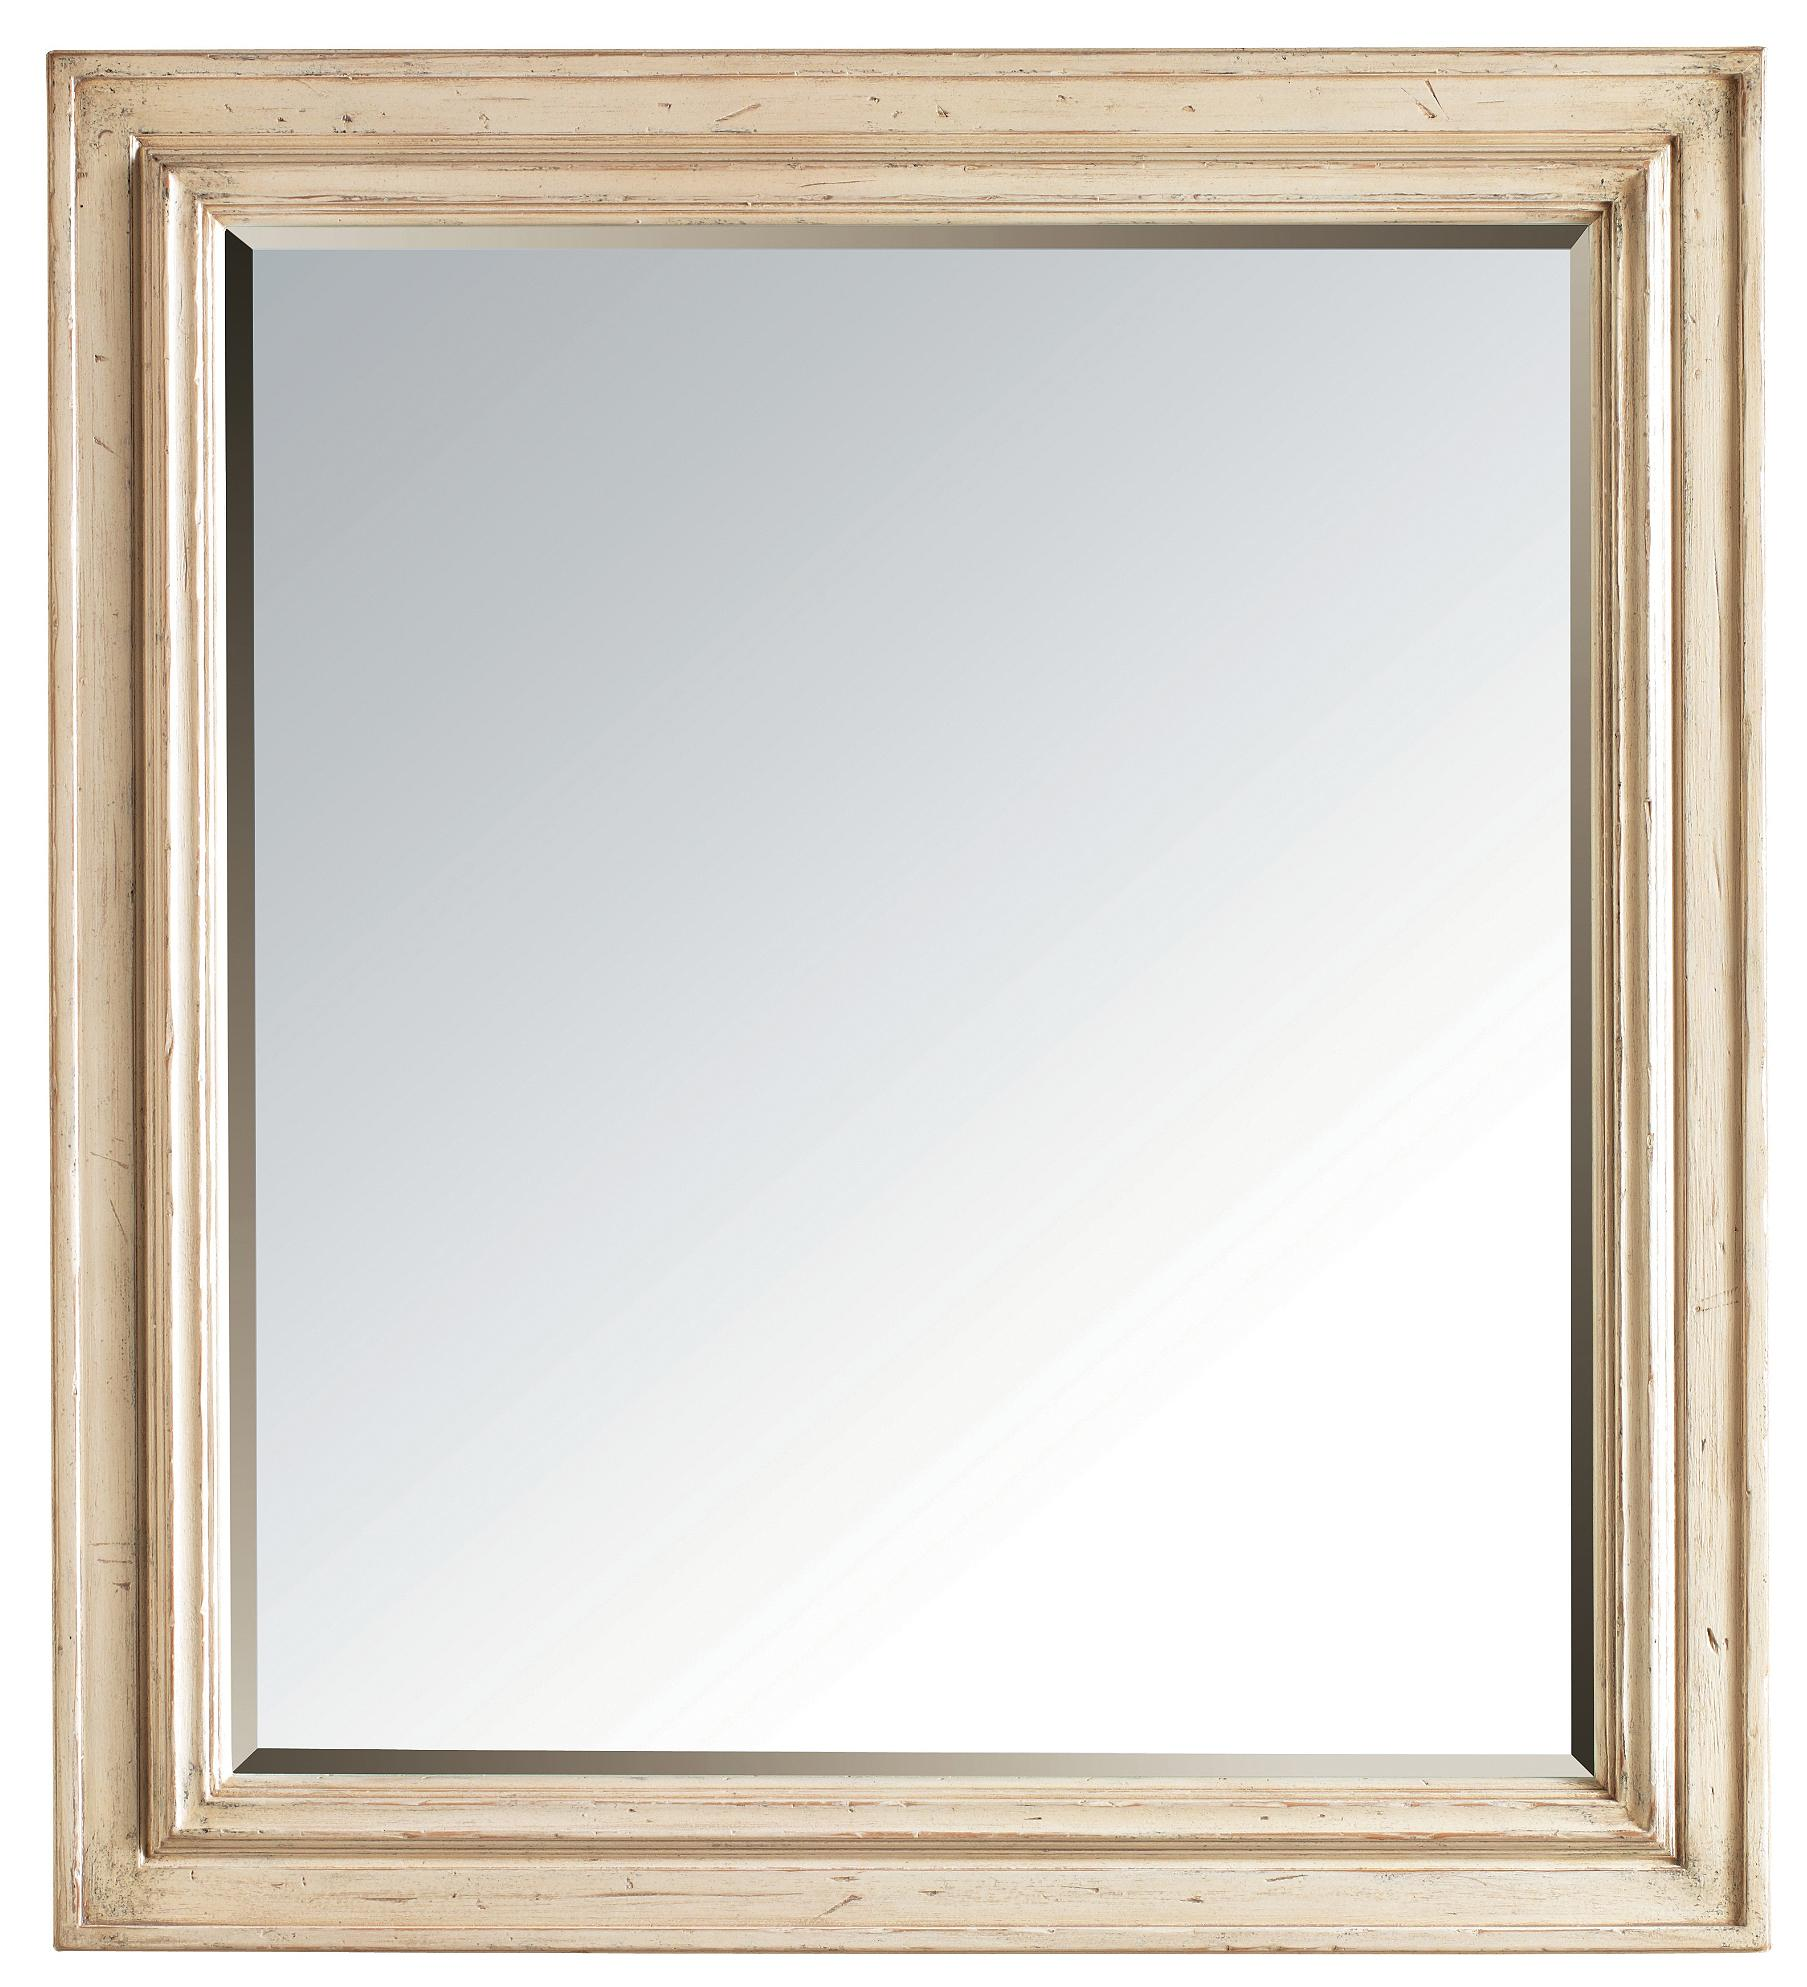 Stanley Furniture European Cottage Landscape Mirror - Item Number: 007-23-30